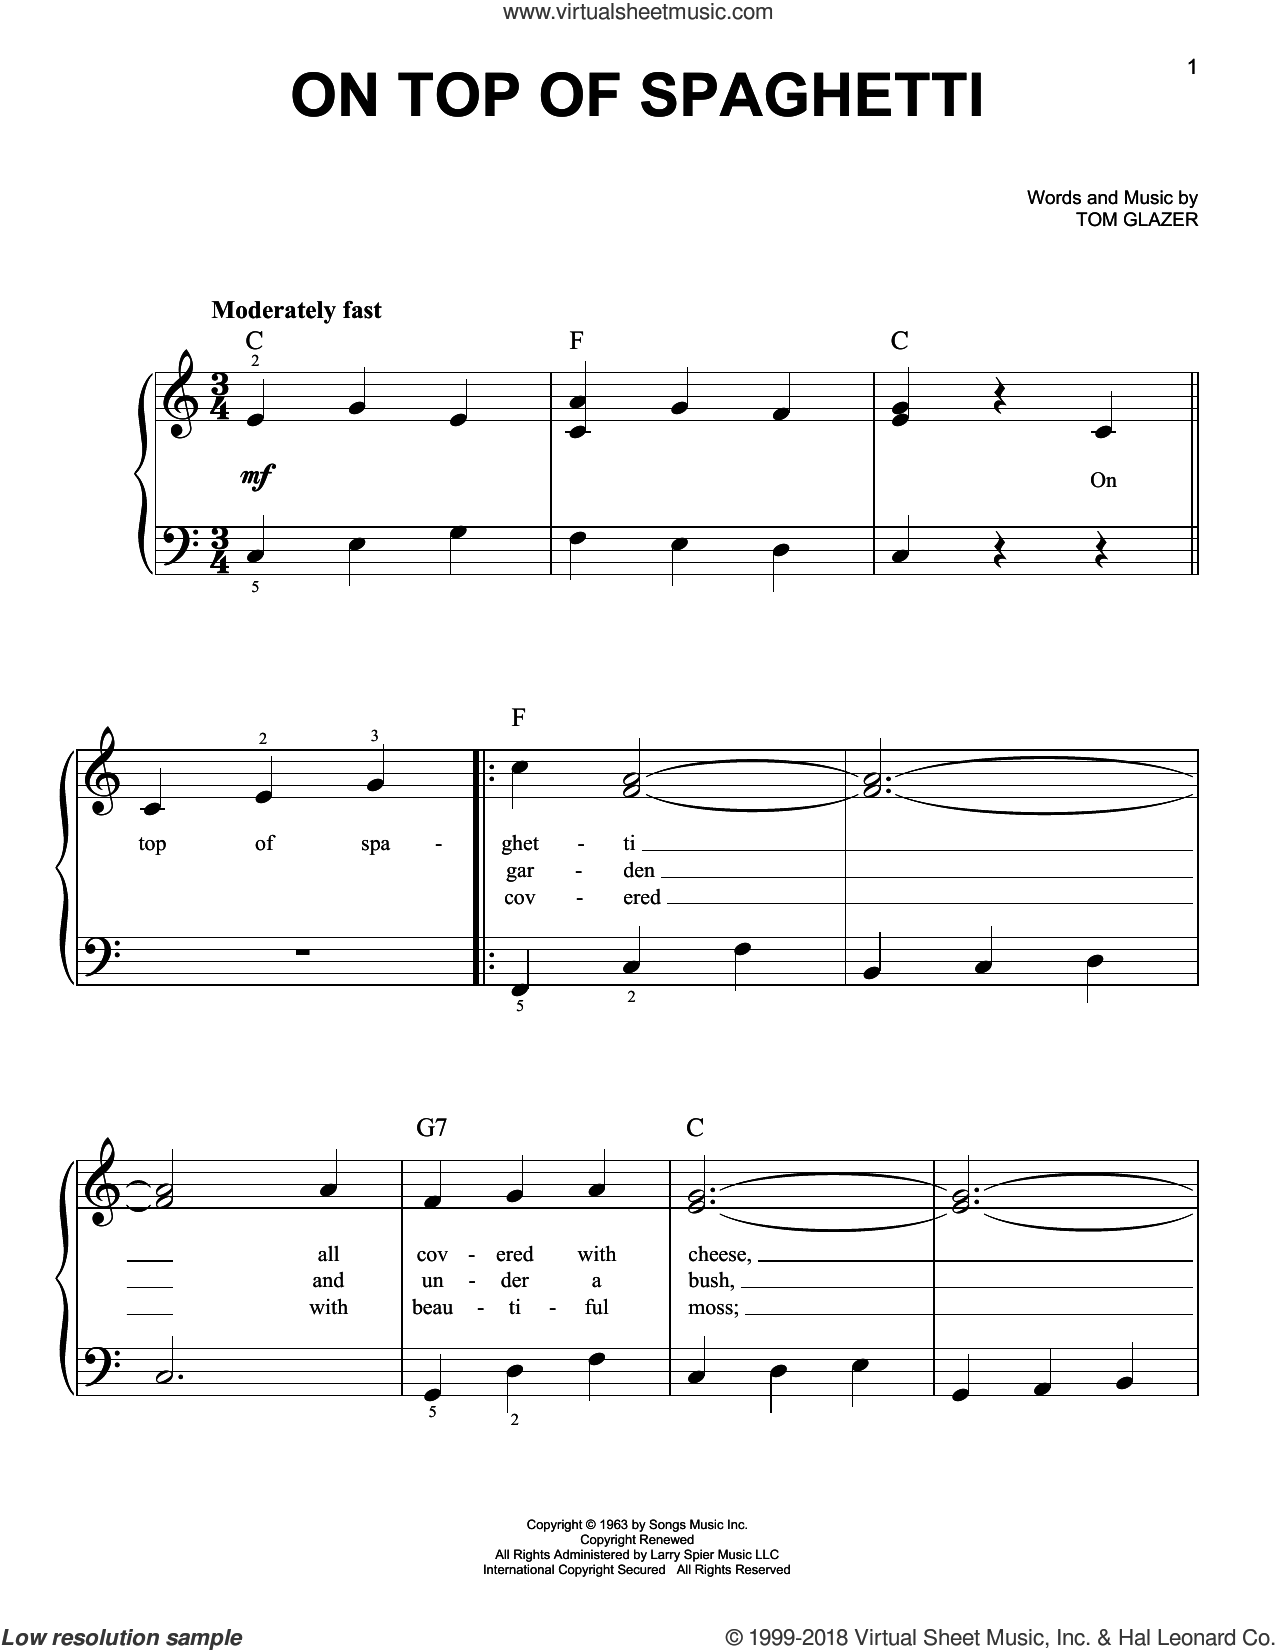 On Top Of Spaghetti sheet music for piano solo by Tom Glazer, easy piano. Score Image Preview.